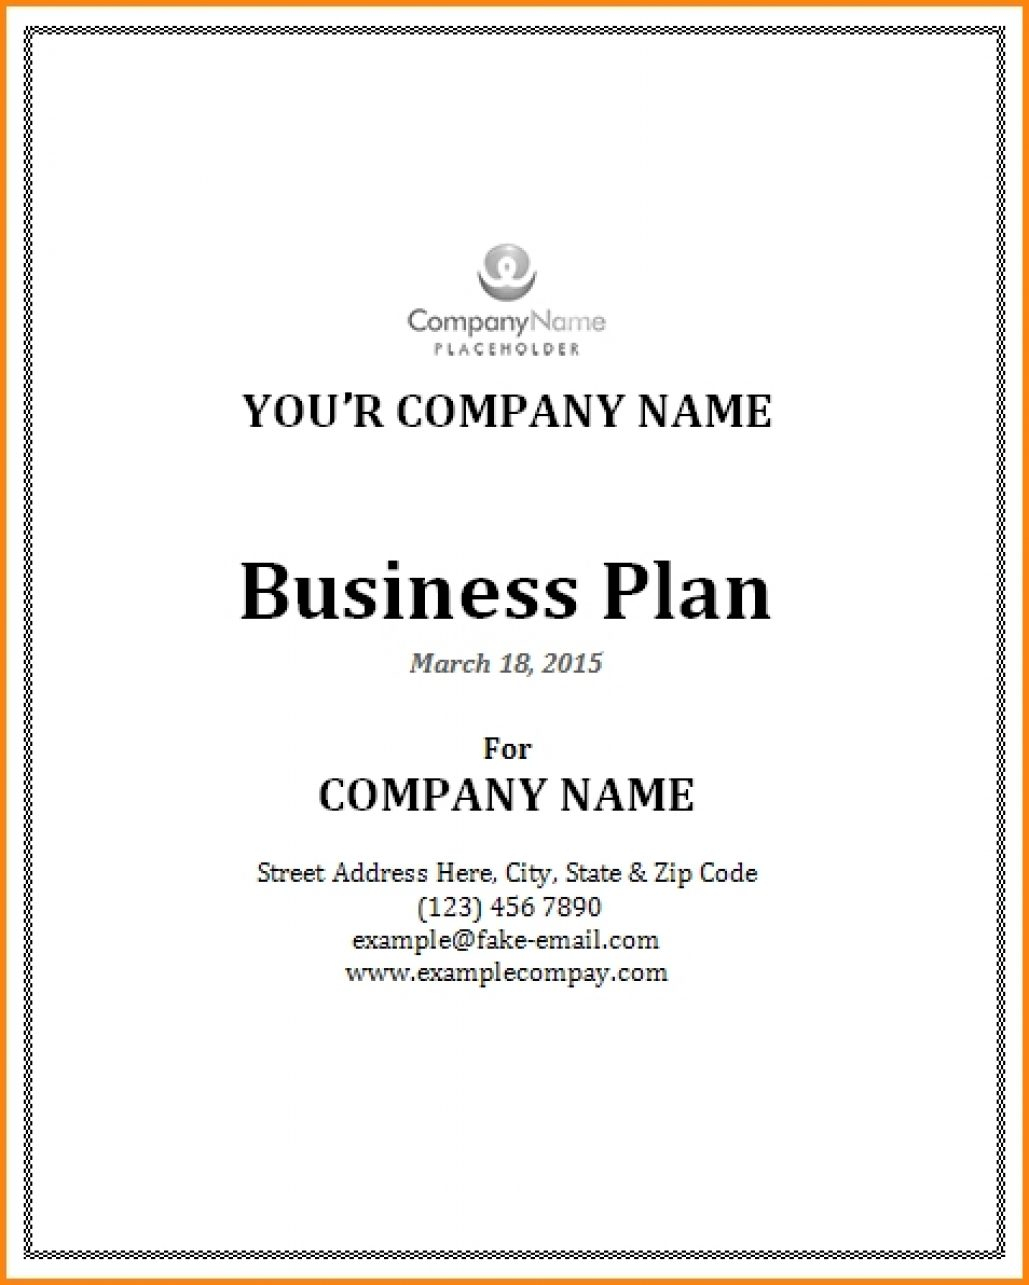 Plan Templates Business Cover Page Template Sample Example Of Intended For Business Plan Title Page Template